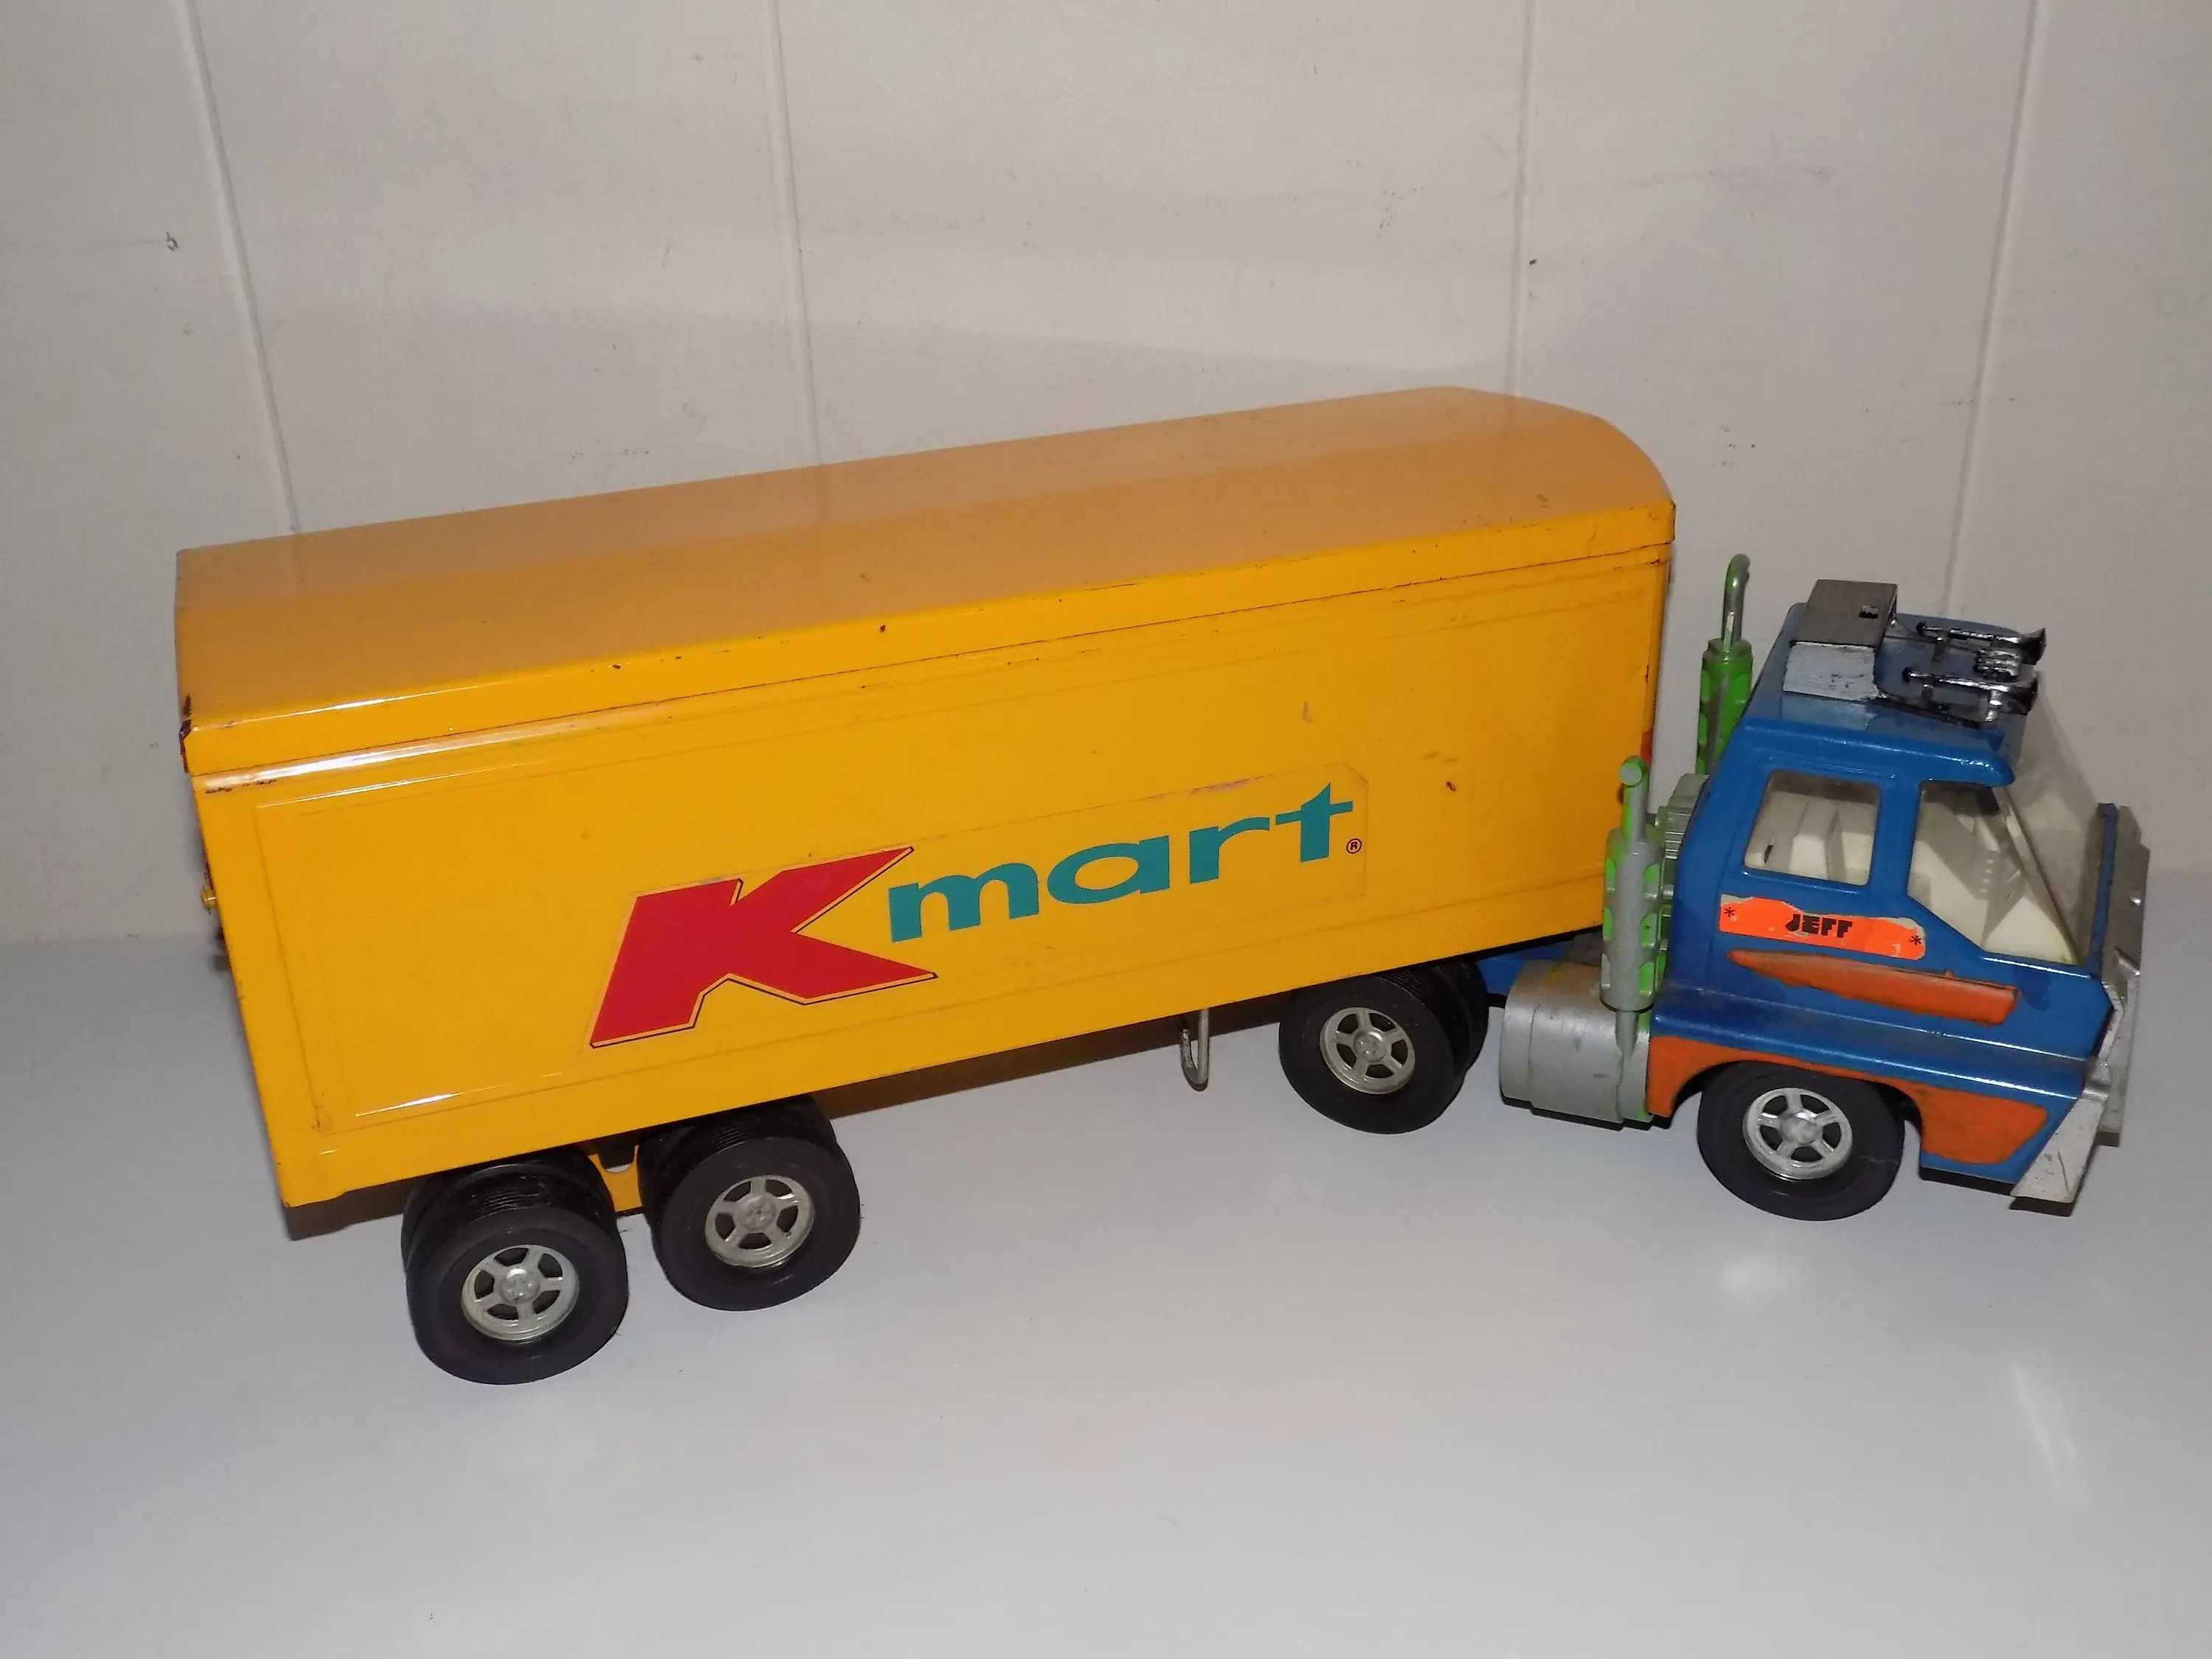 Candle Making Kit Kmart Vintage Ertl Pressed Steel Kmart Tractor Trailer